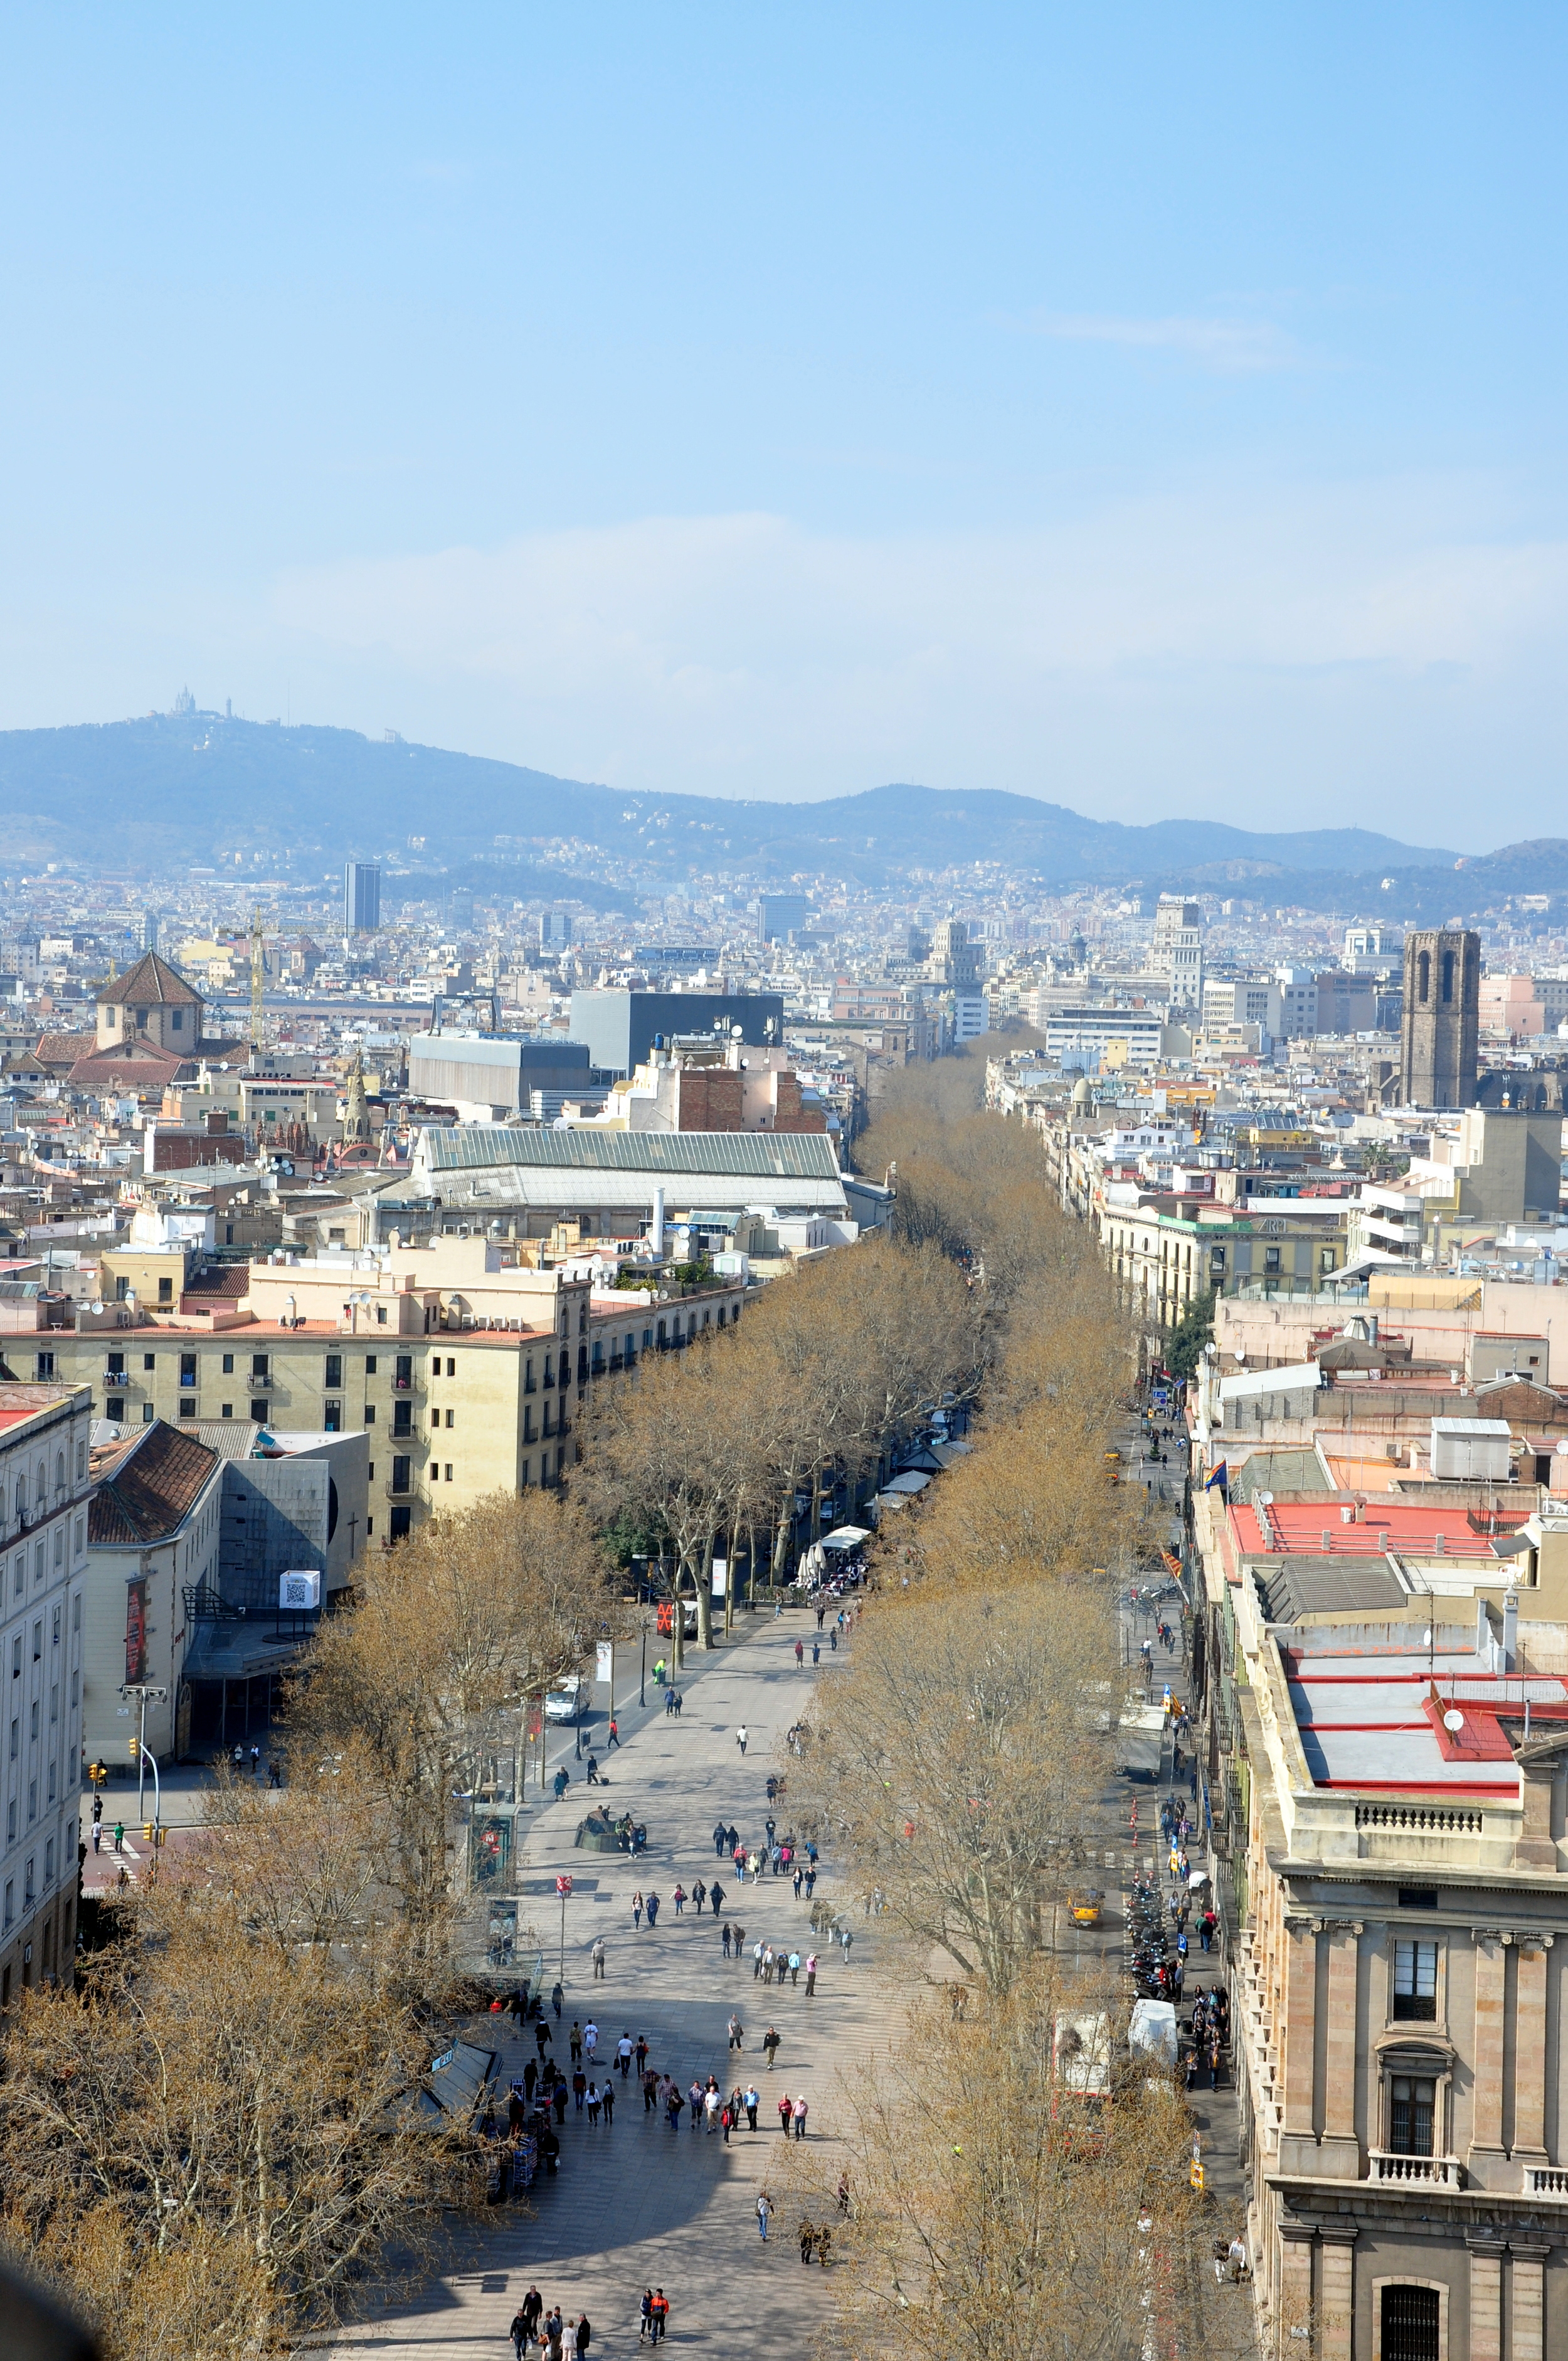 A view of La Rambla from the top of theColumbusMonument.